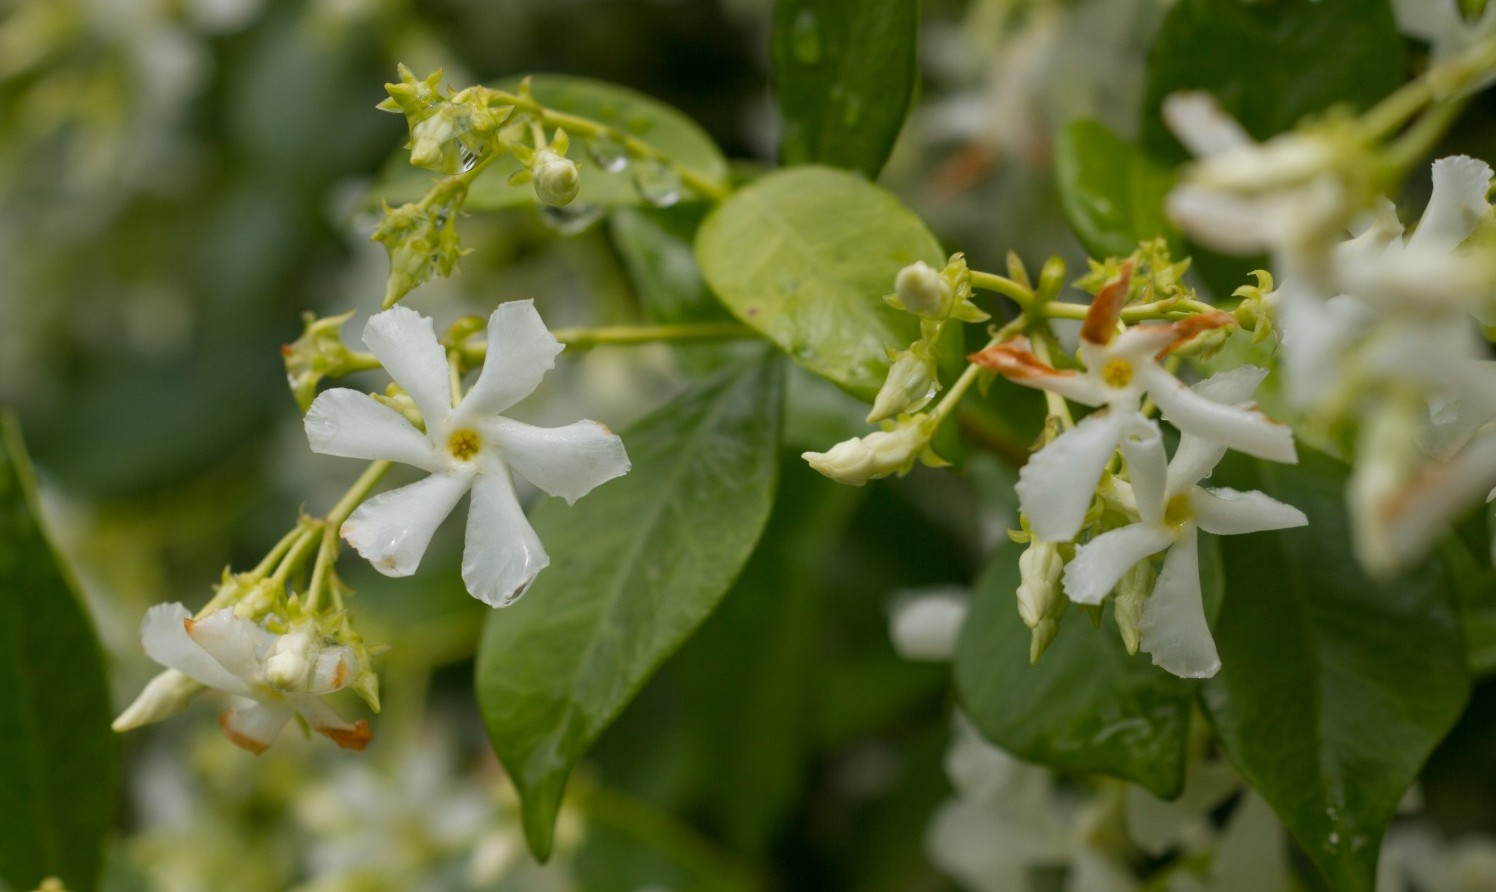 Jasmine flowers after rain, delicate roughness, Richard Lund